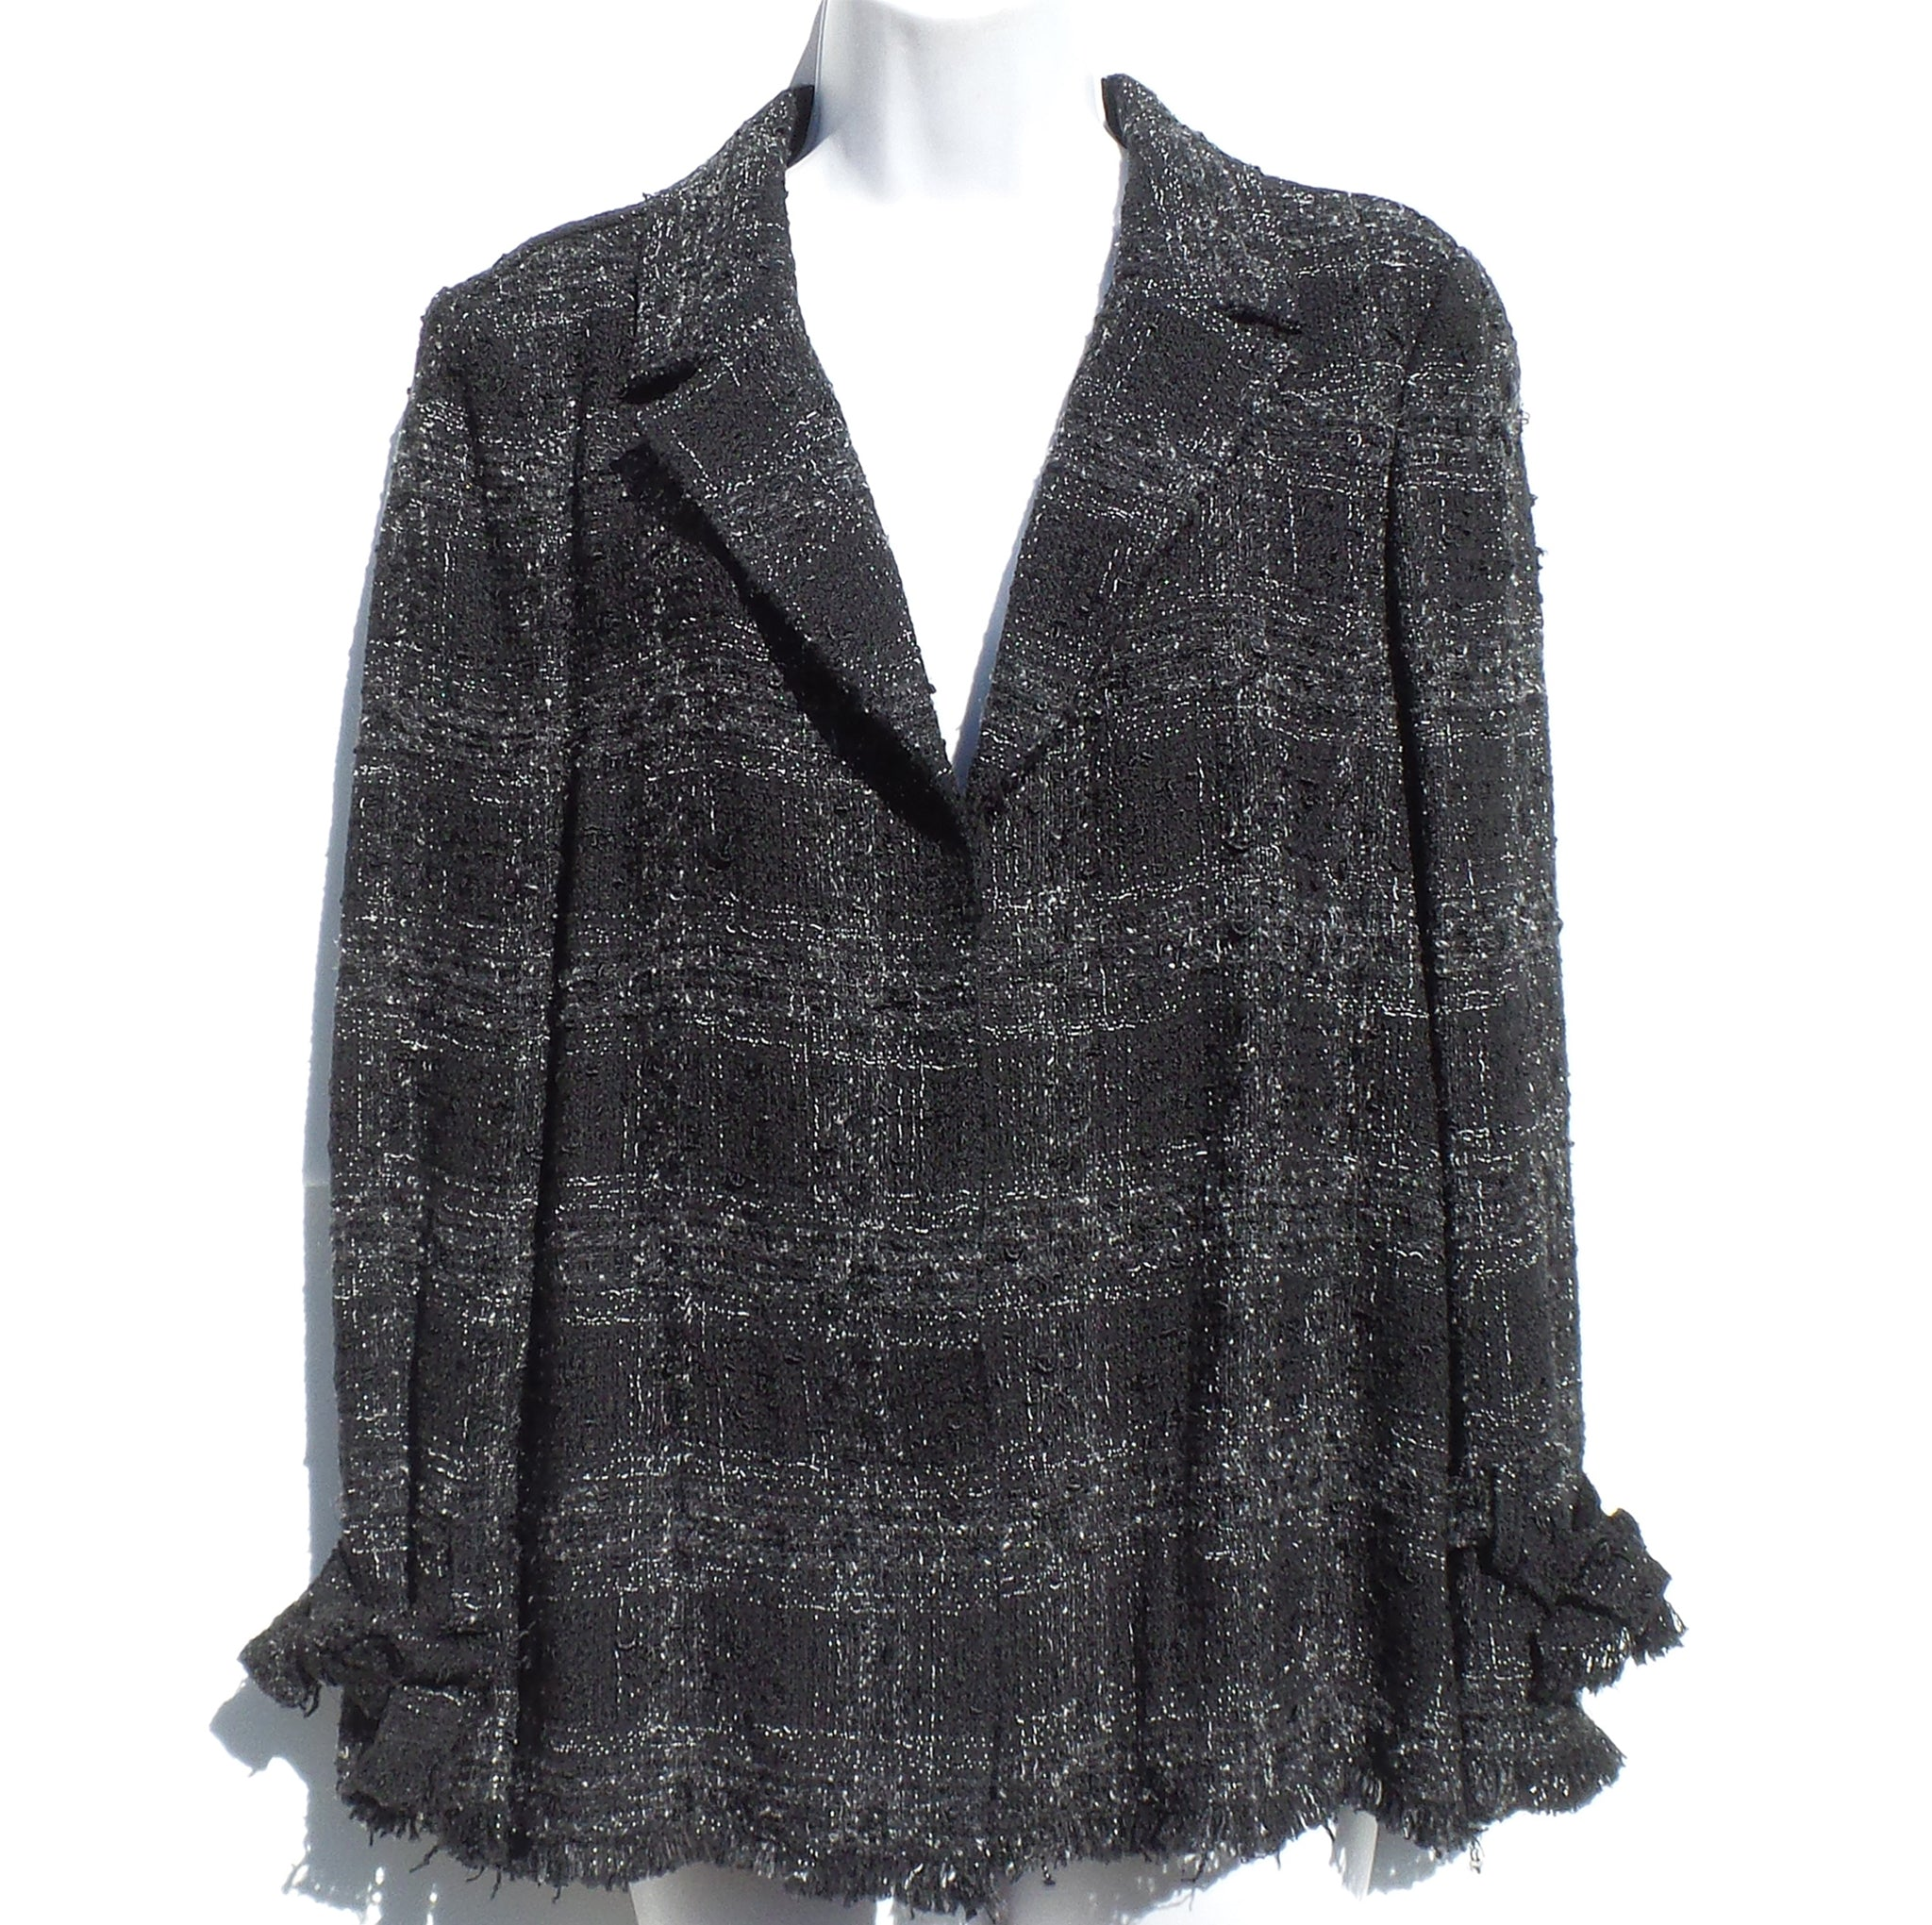 'Sold' CHANEL Black Gray White Tweed CC Cuff Cotton Silk Blazer Jacket 42